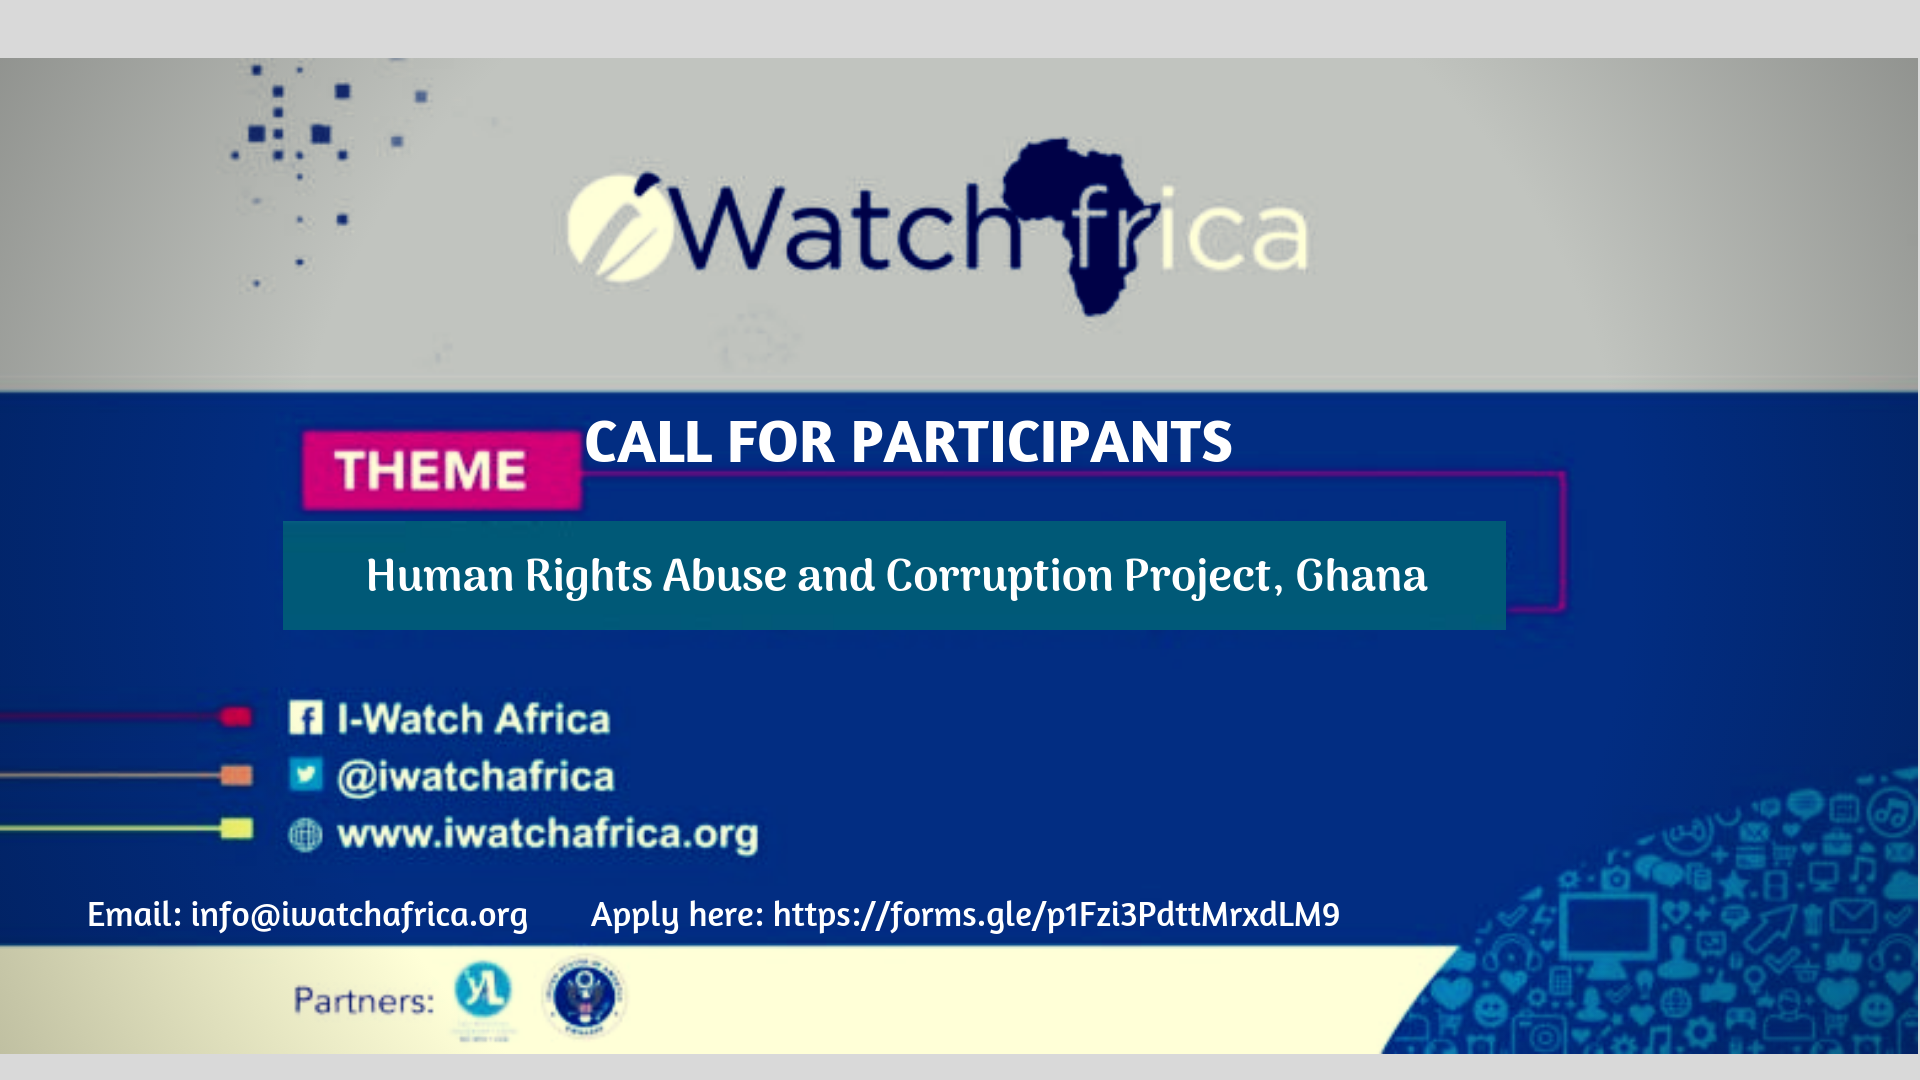 iWatch Africa call for participants